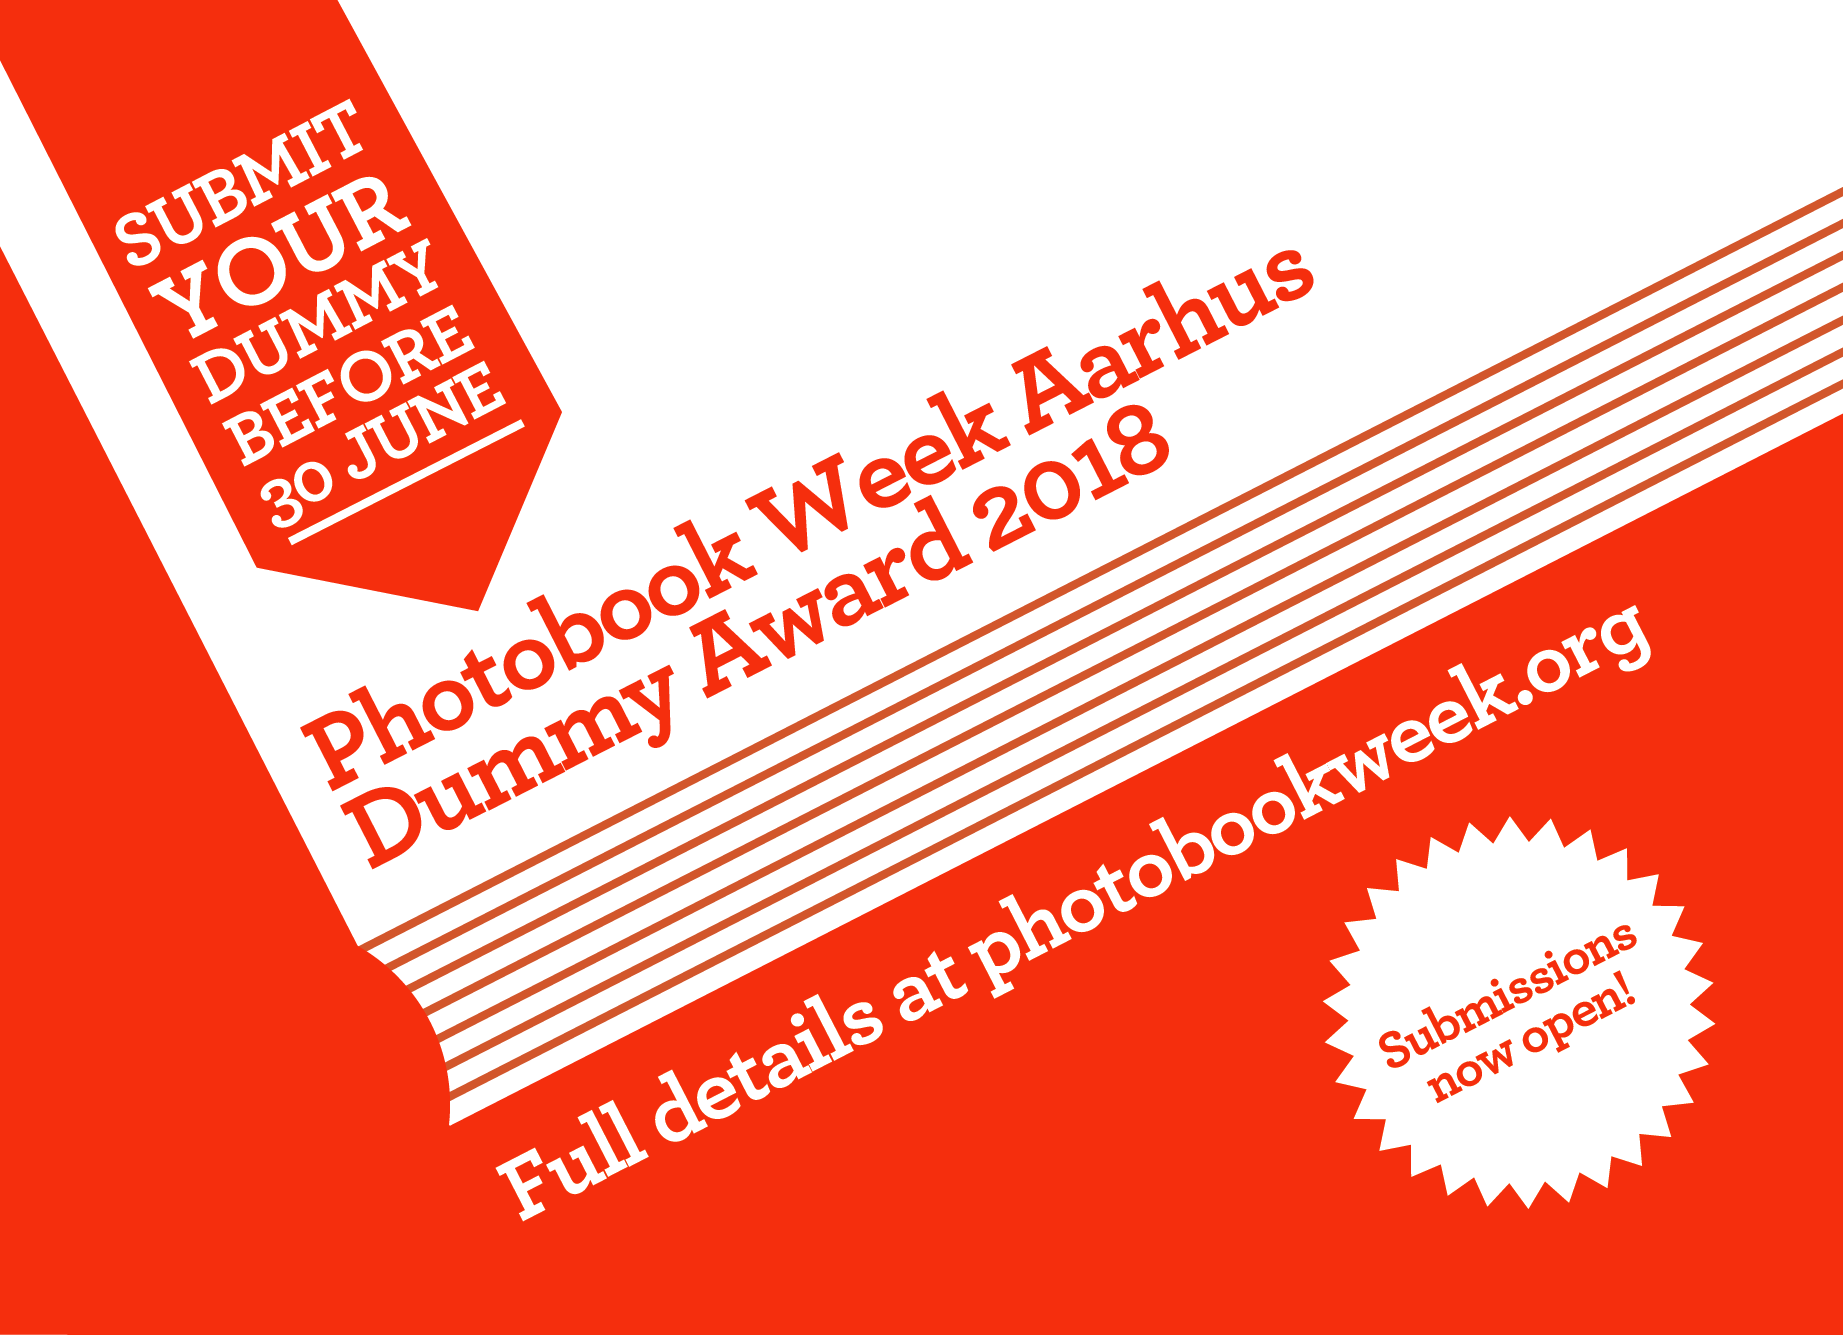 Submit your dummy to the new Photobook Week Aarhus Dummy Award!